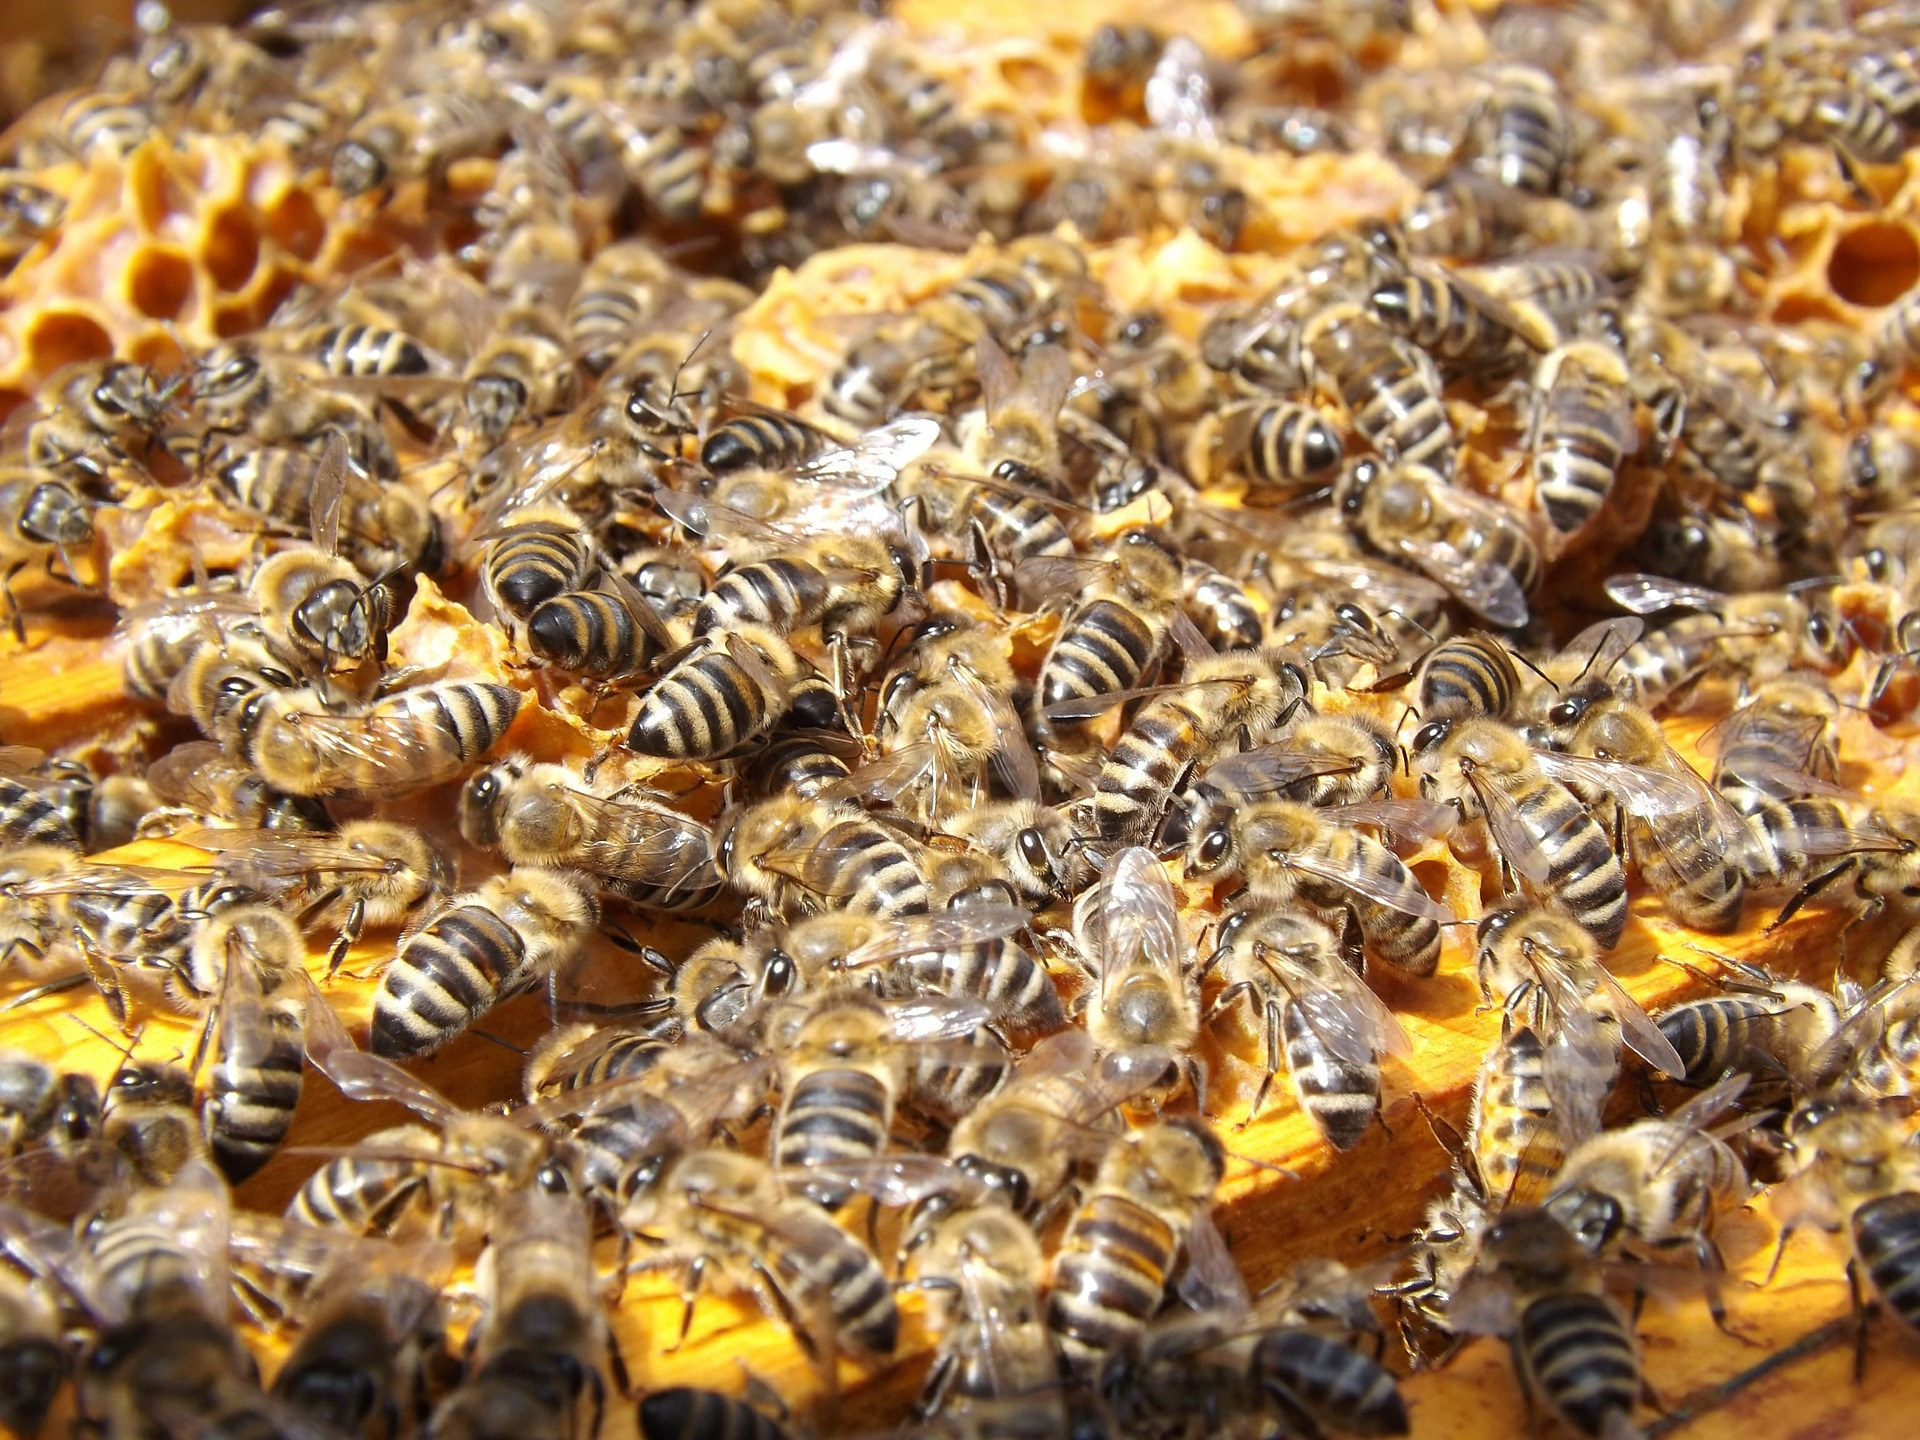 Bees.